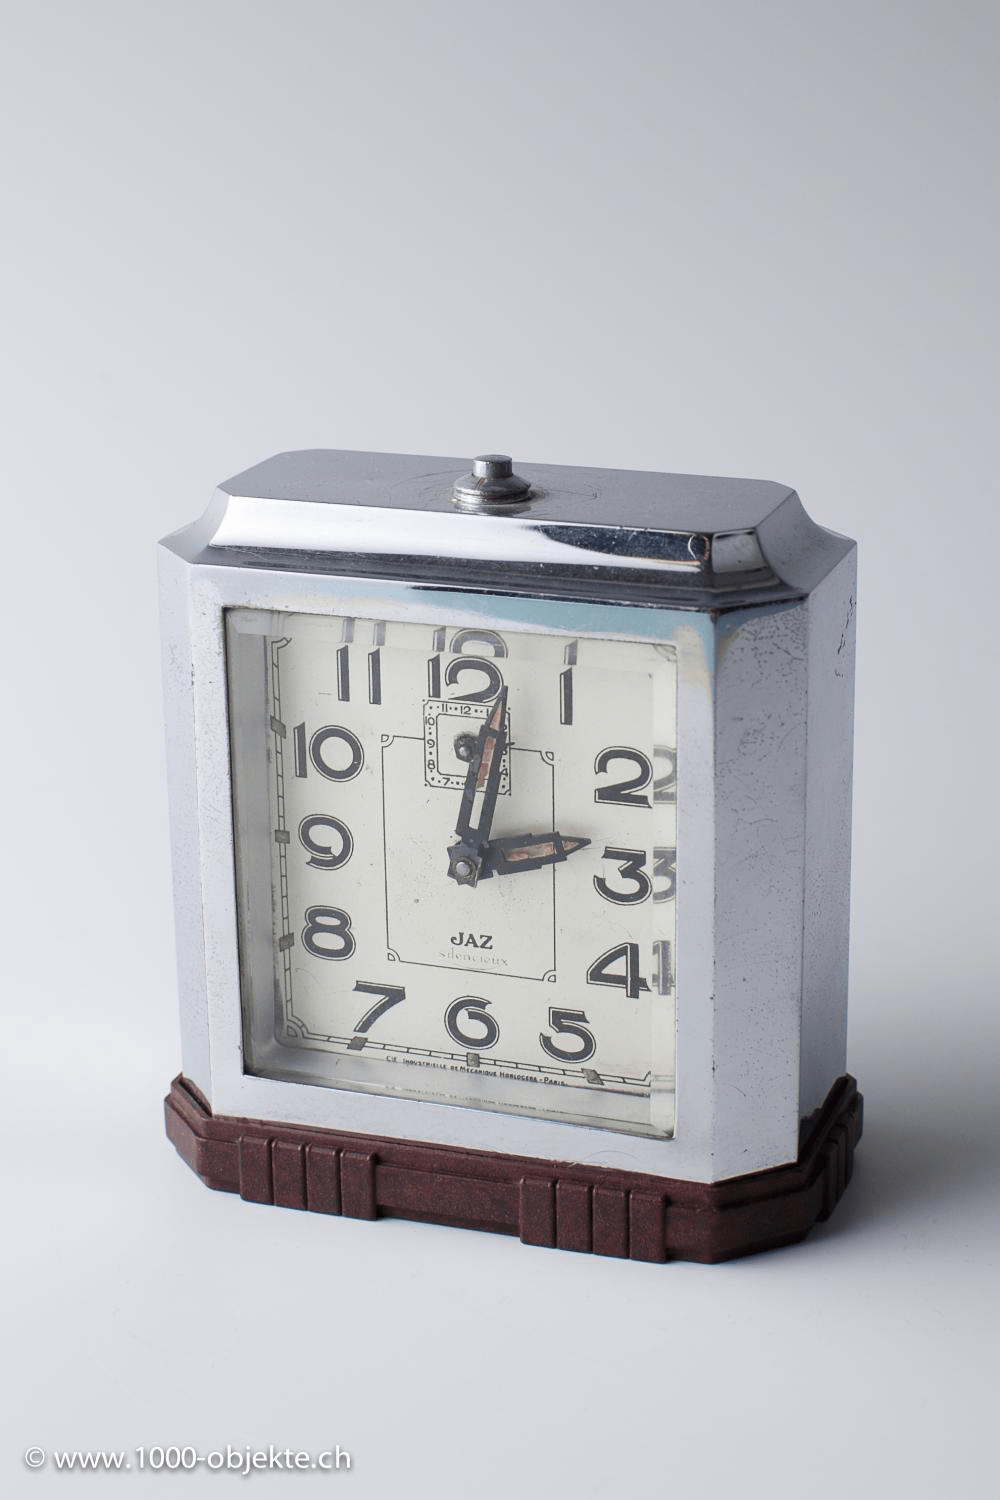 American Made Alarm Clock Alarm Clocks For Sale At Online Auction Buy Rare Alarm Clocks